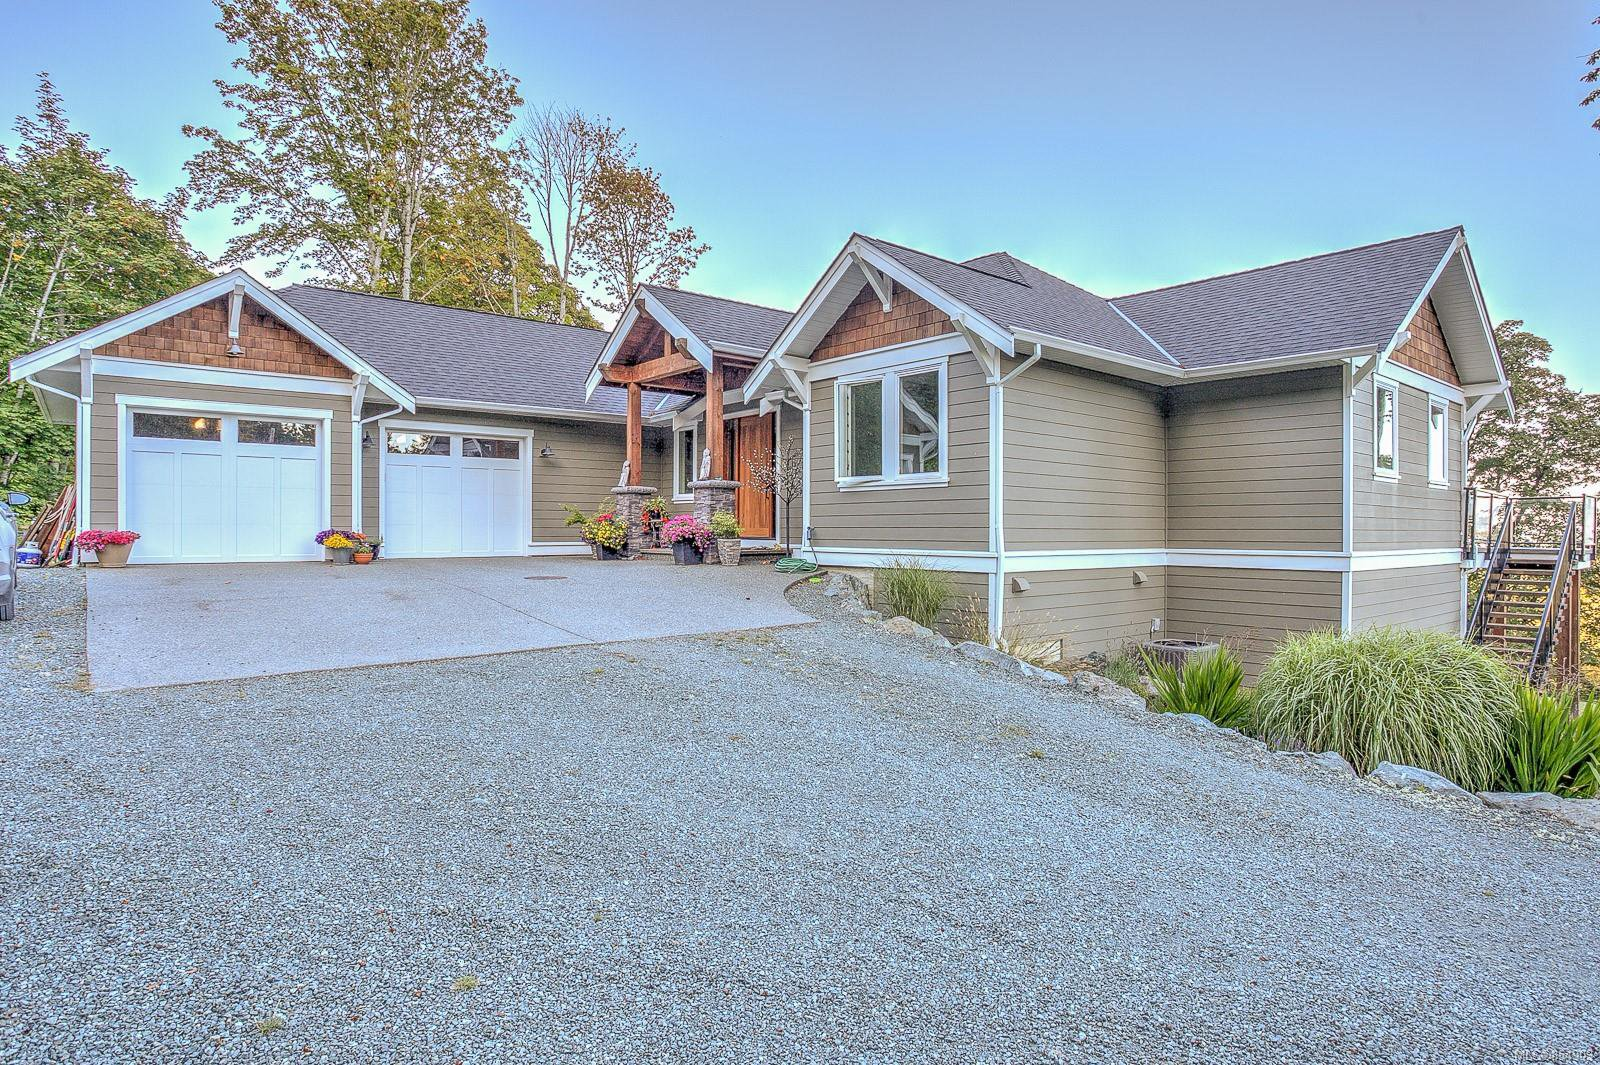 Main Photo: 1 3336 Moss Rd in : Du West Duncan Single Family Detached for sale (Duncan)  : MLS®# 854903